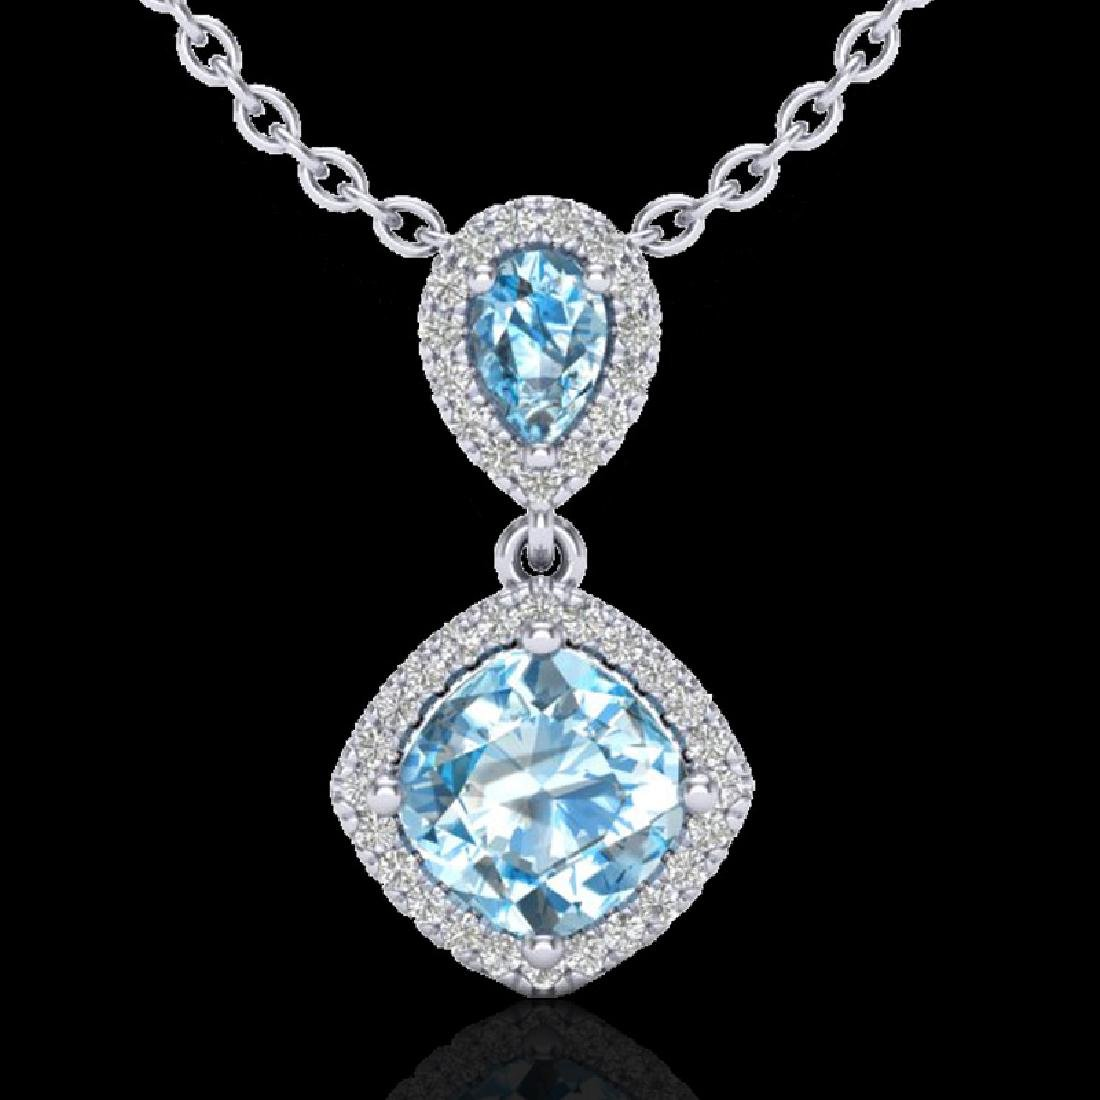 3.50 CTW Sky Blue Topaz & Micro VS/SI Diamond Necklace